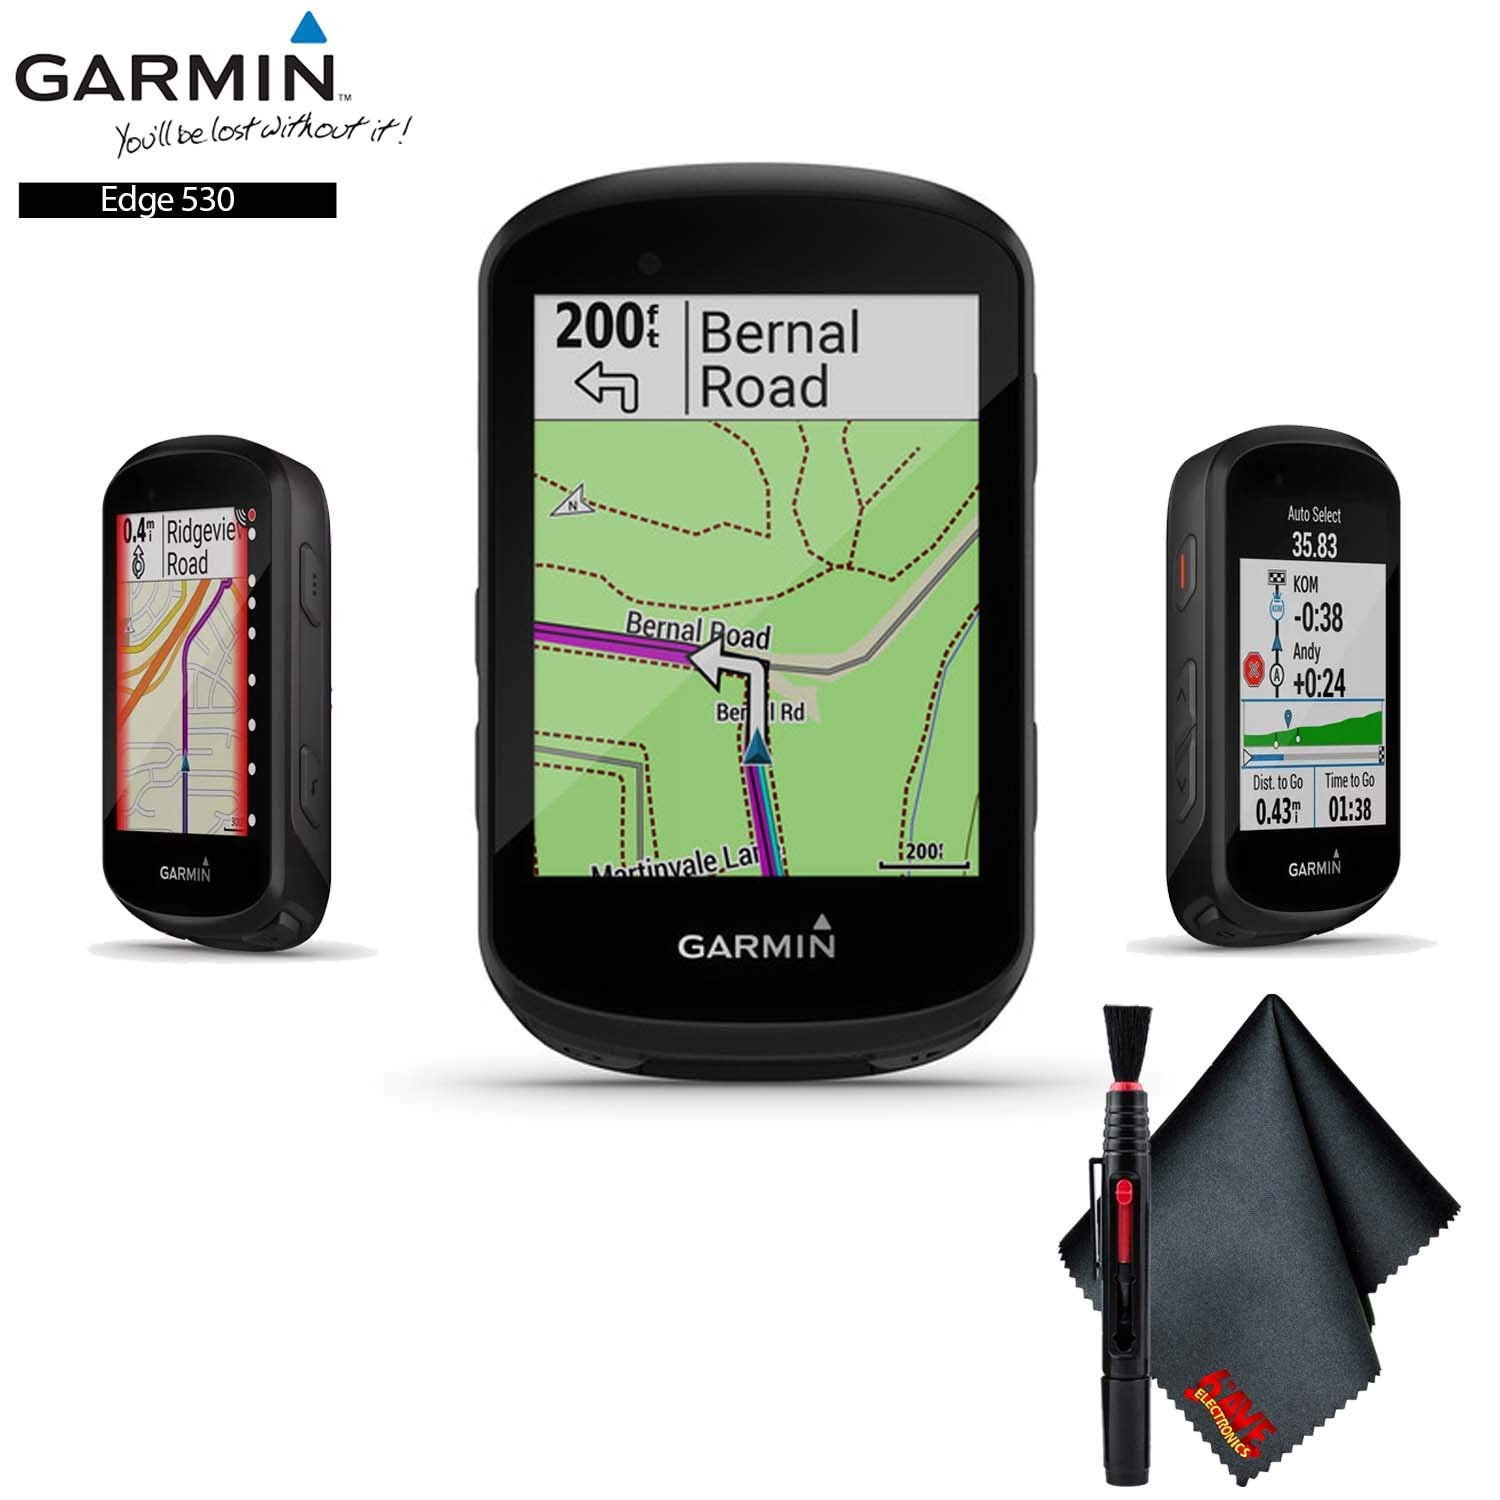 Garmin Edge 530, Performance GPS Cycling/Bike Computer with Mapping, Dynamic Performance Monitoring Accessory Kit by Garmin